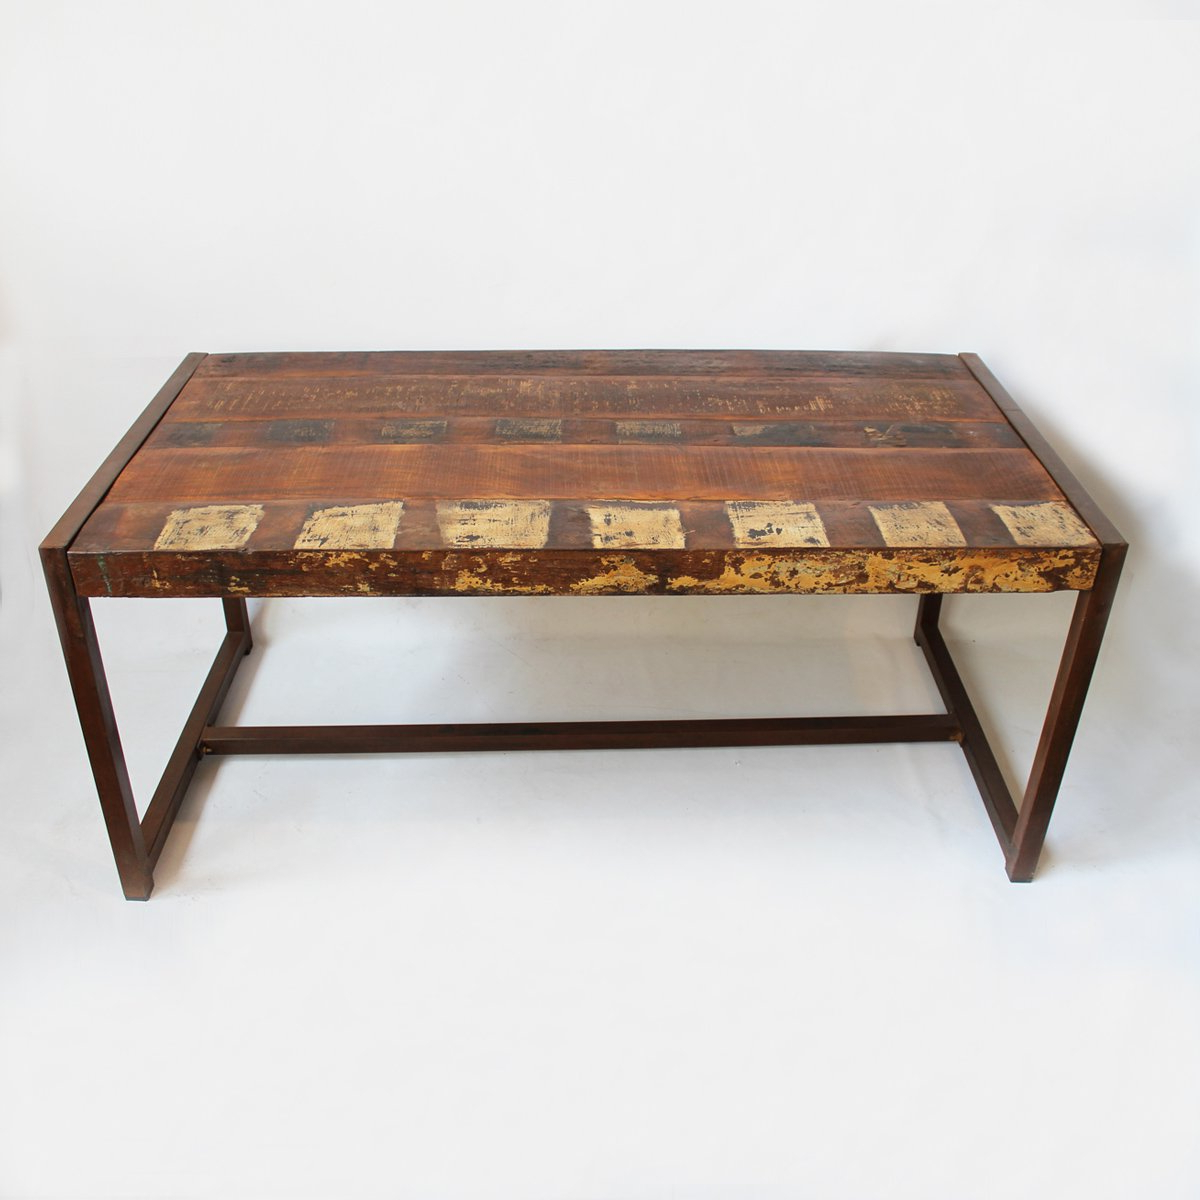 Amazon: Design Mix Furniture Reclaimed Wood & Iron Throughout Most Recent Iron Wood Dining Tables (View 16 of 30)